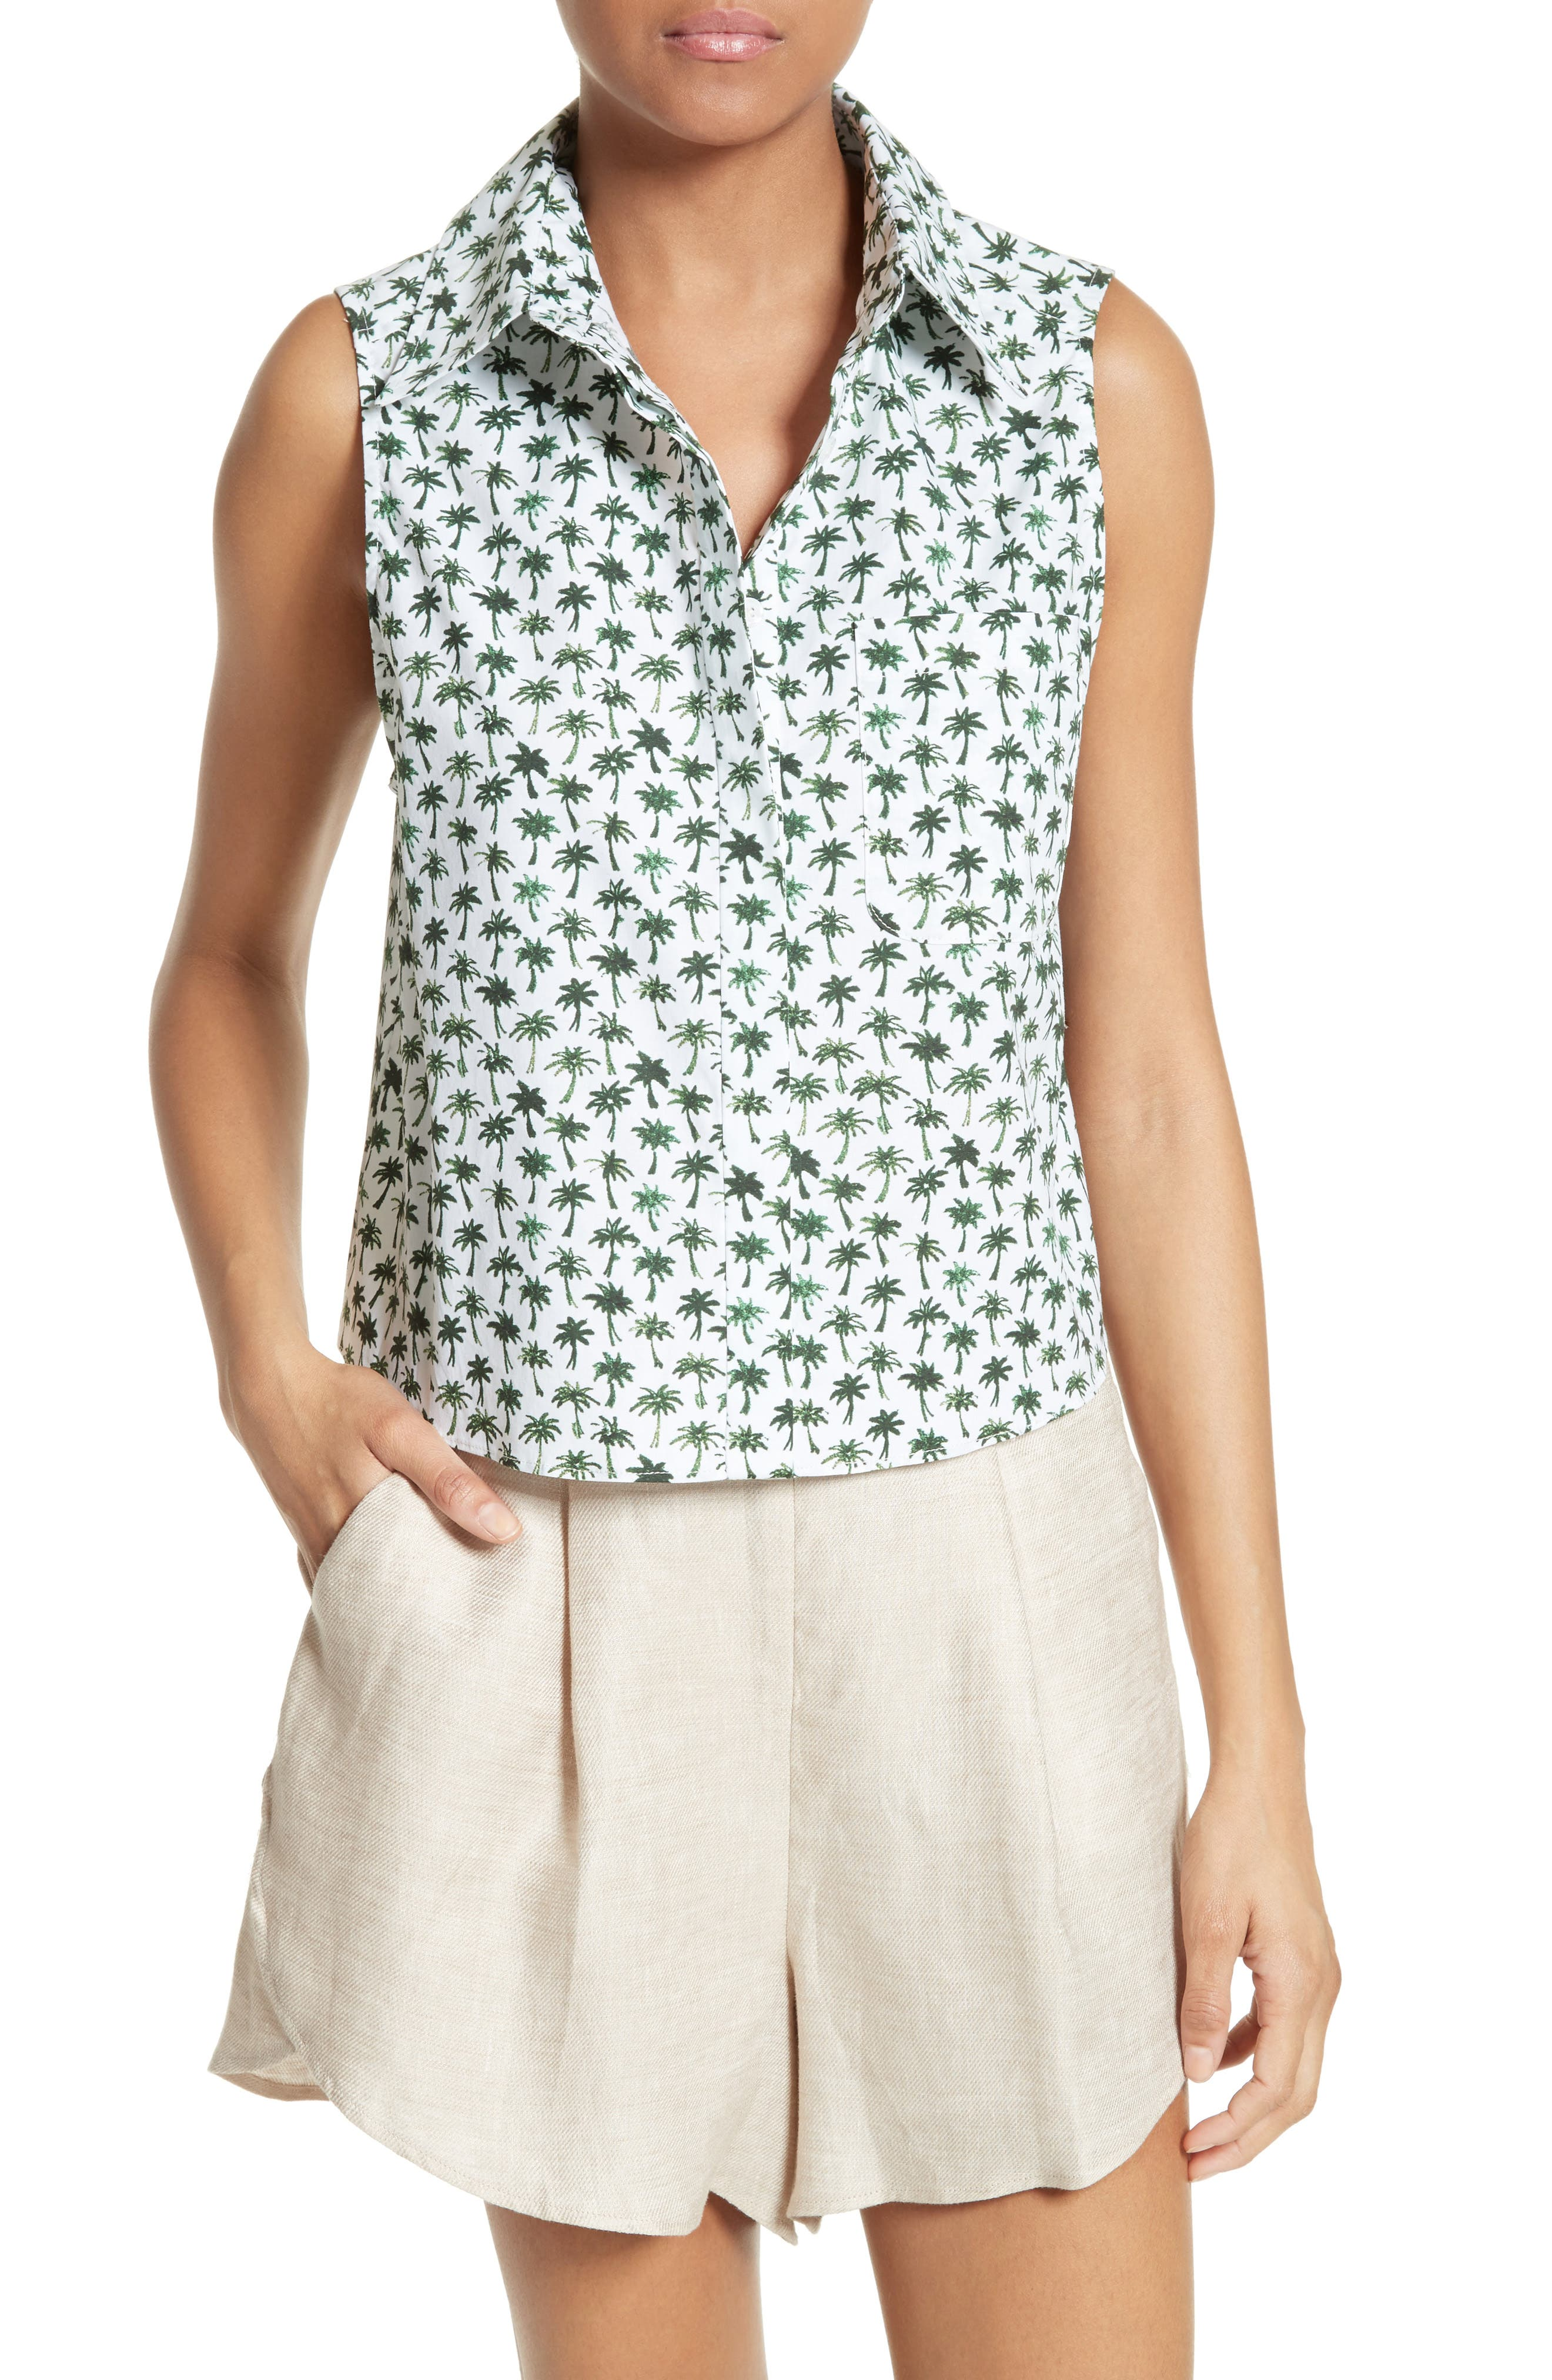 Milly Bambino Palm Print Tie Back Top